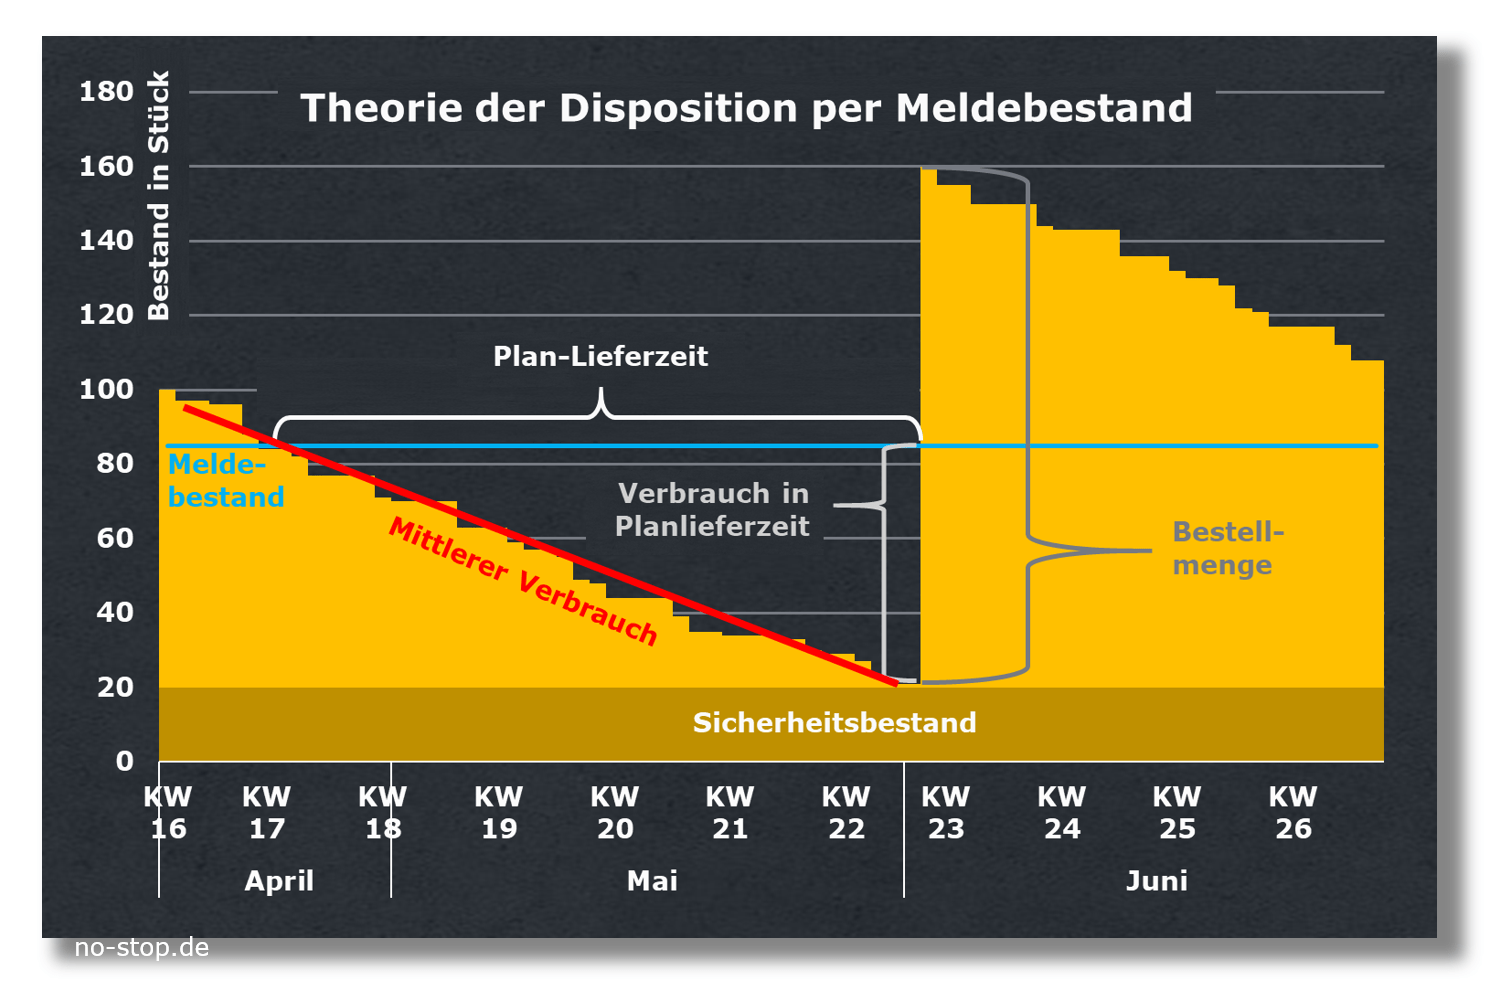 Theorie der Disposition per Meldebestand